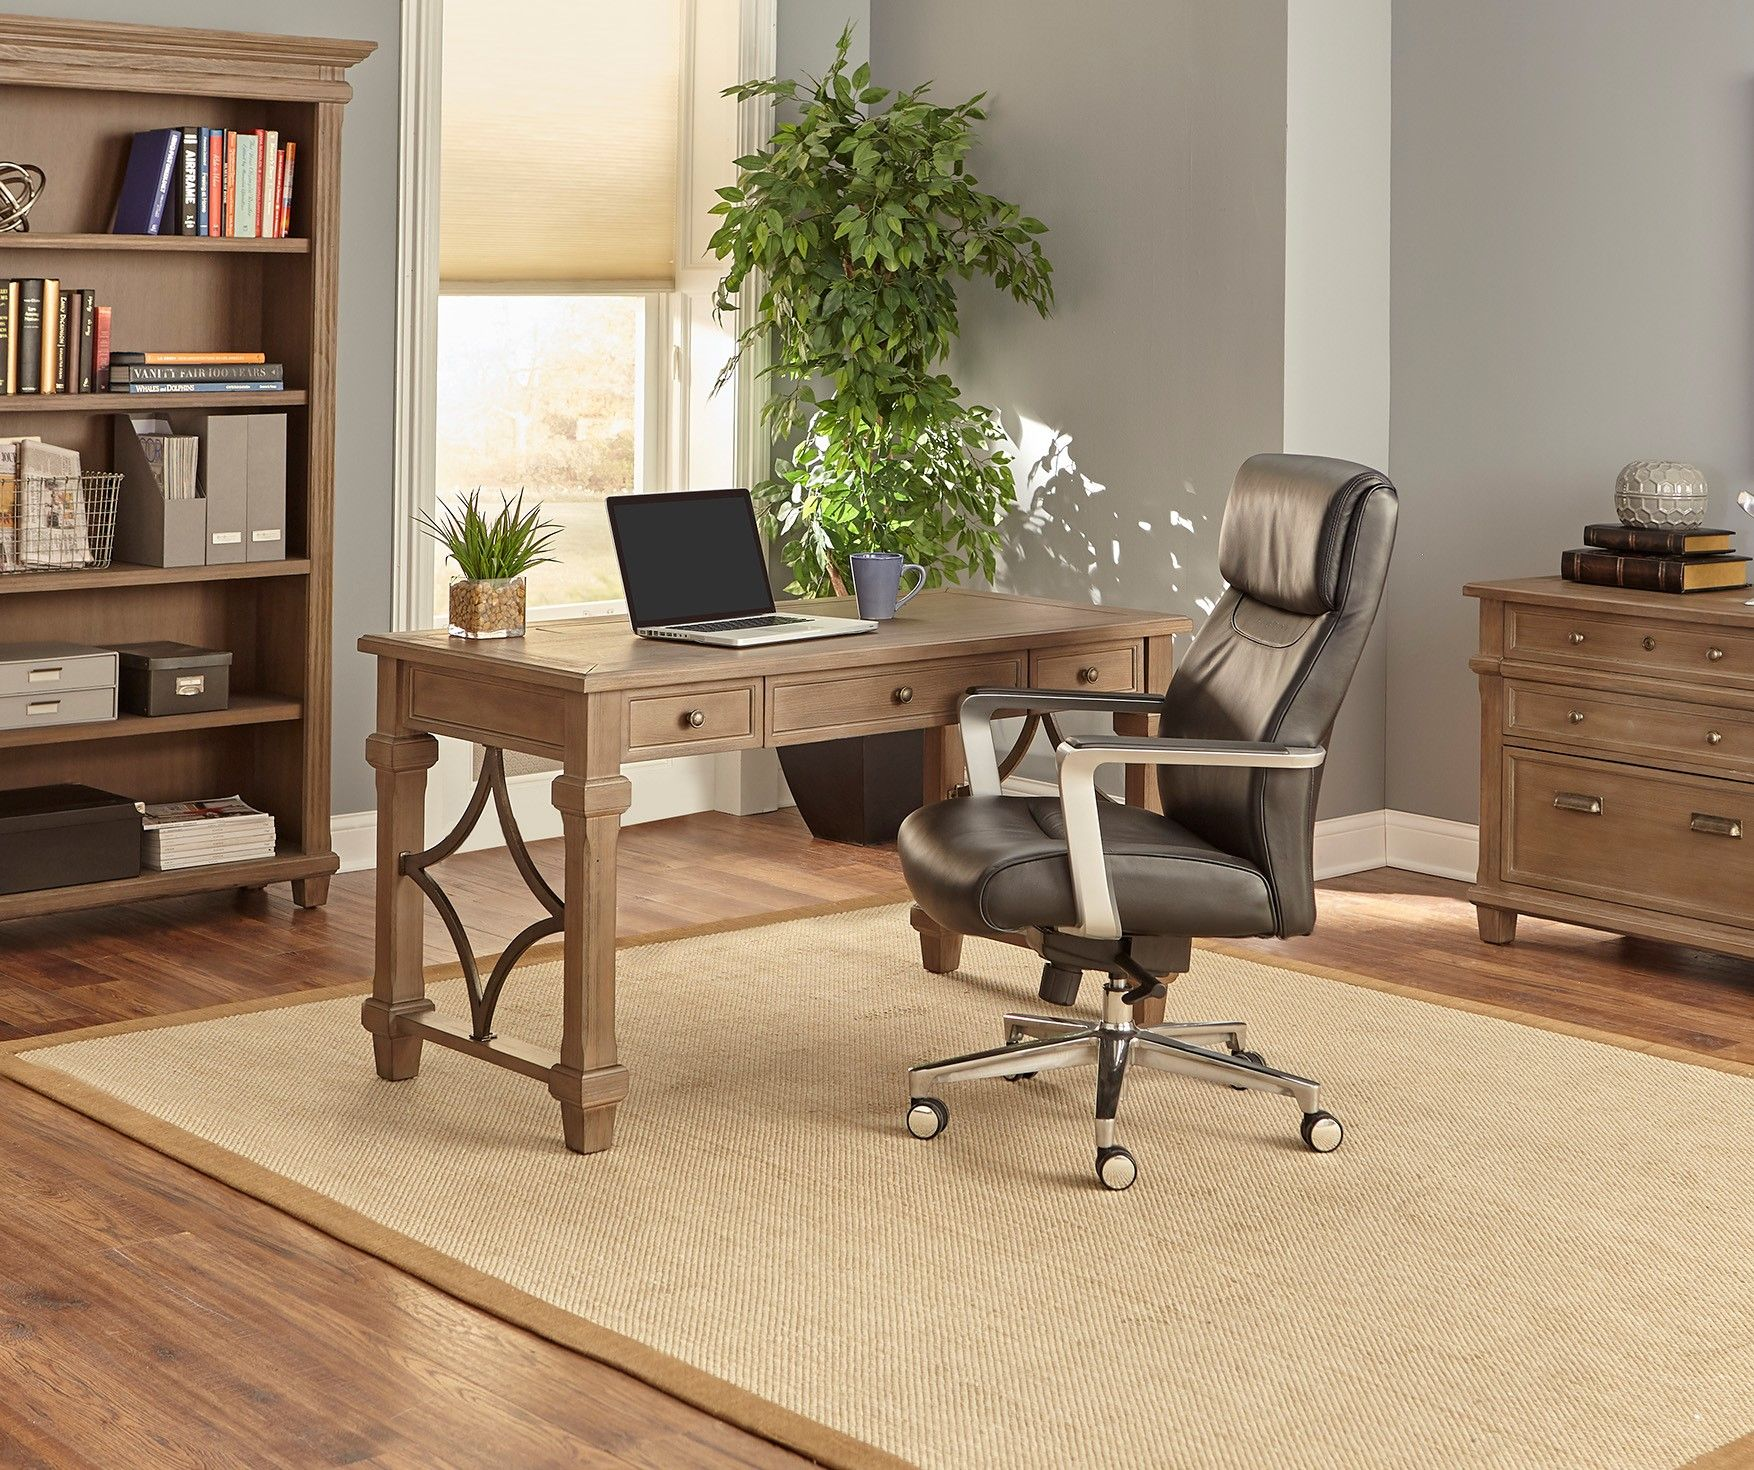 Traditional Interiordesign Ideas: Rustic Traditional Home Office Furniture #homeoffice